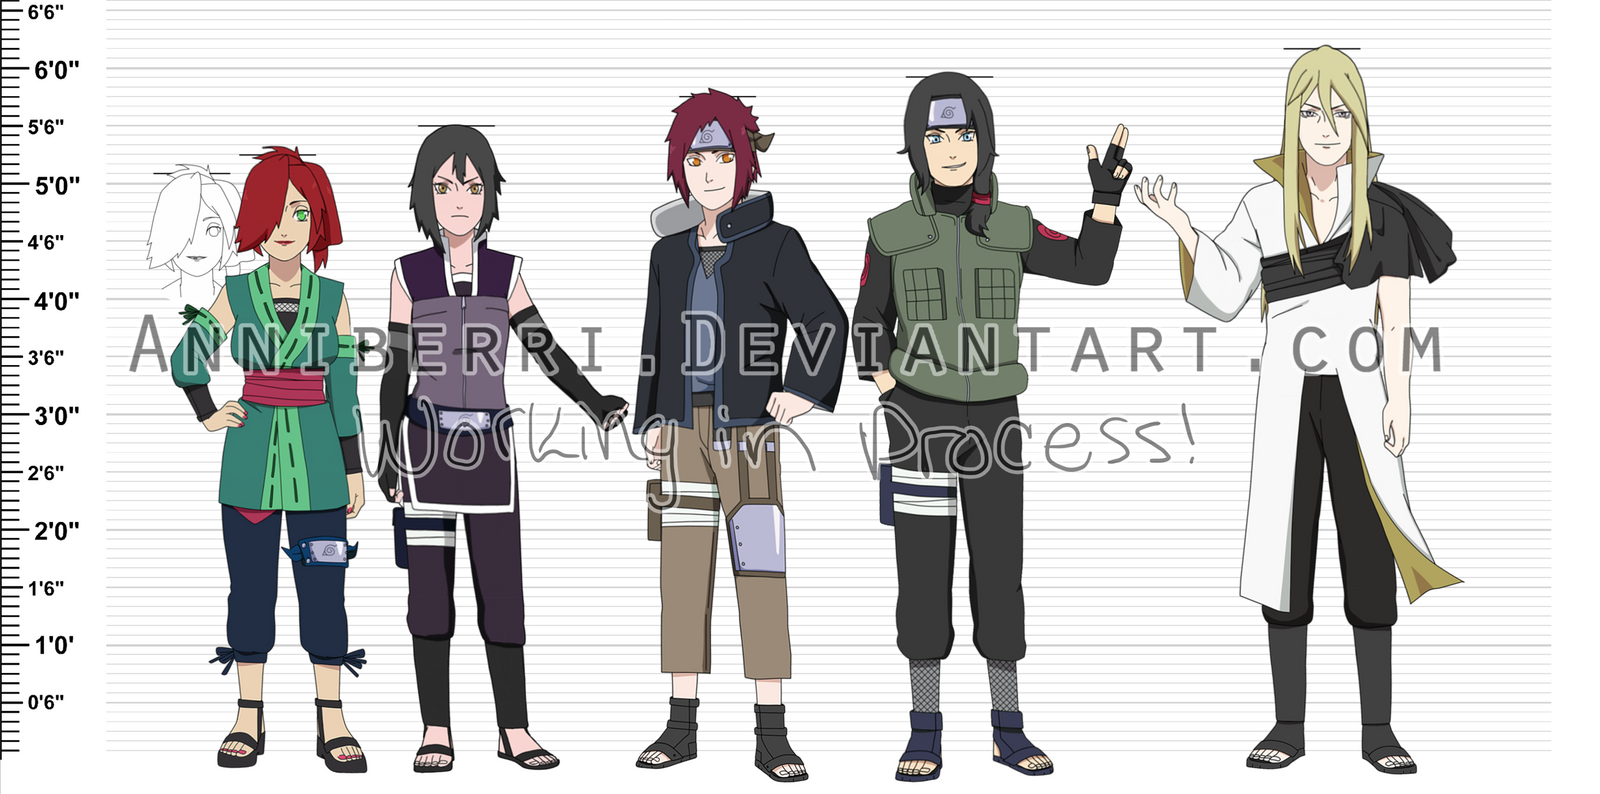 166 Cm Anime Characters : Wip naruto oc height chart by anniberri on deviantart